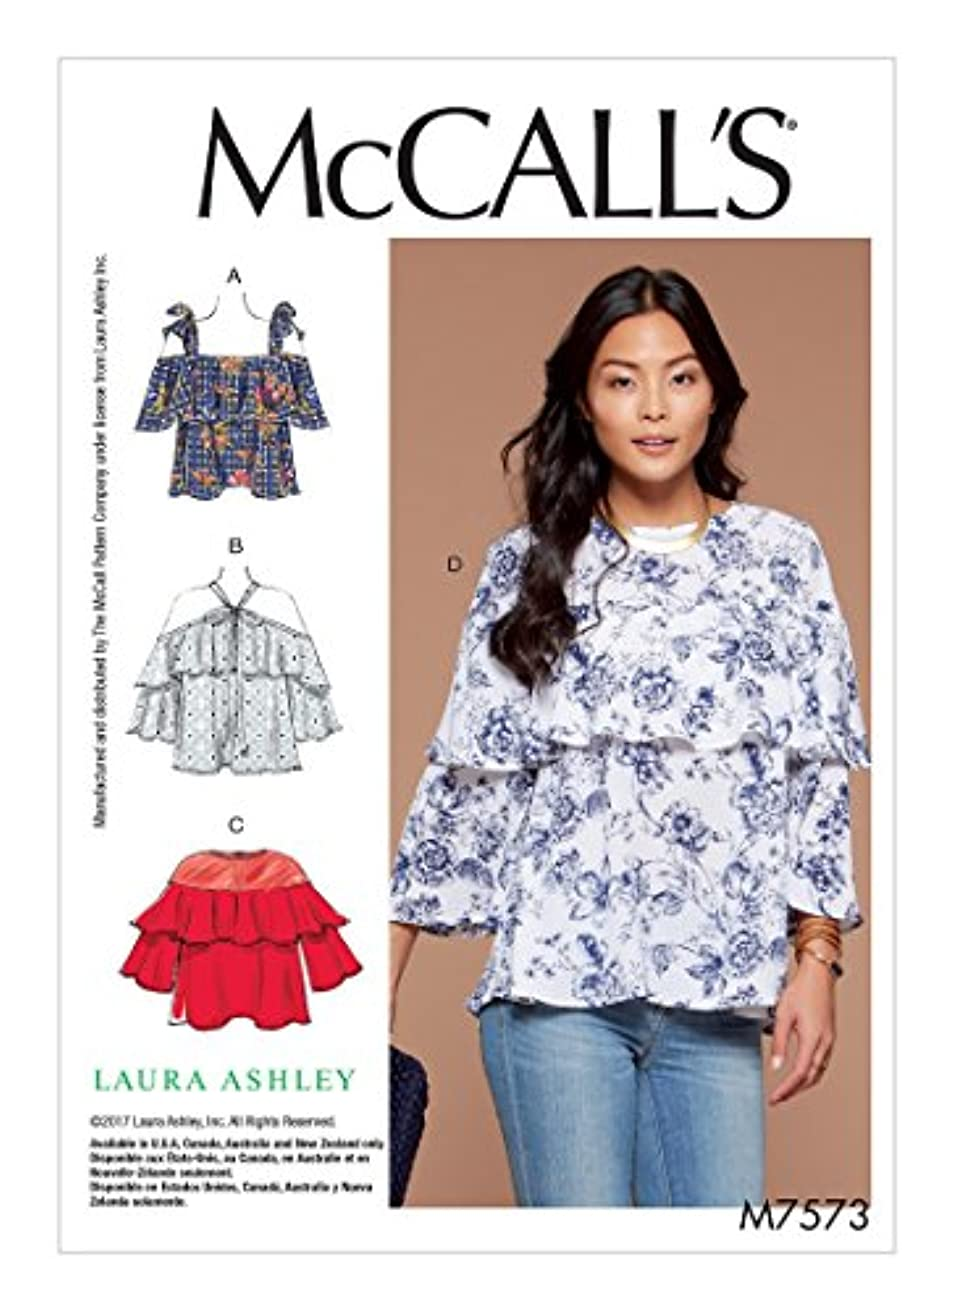 MCCALLS M7573 Misses' Ruffle Tops with Off-the-Shoulder and Tie Options (SIZE 6-14) SEWING PATTERN